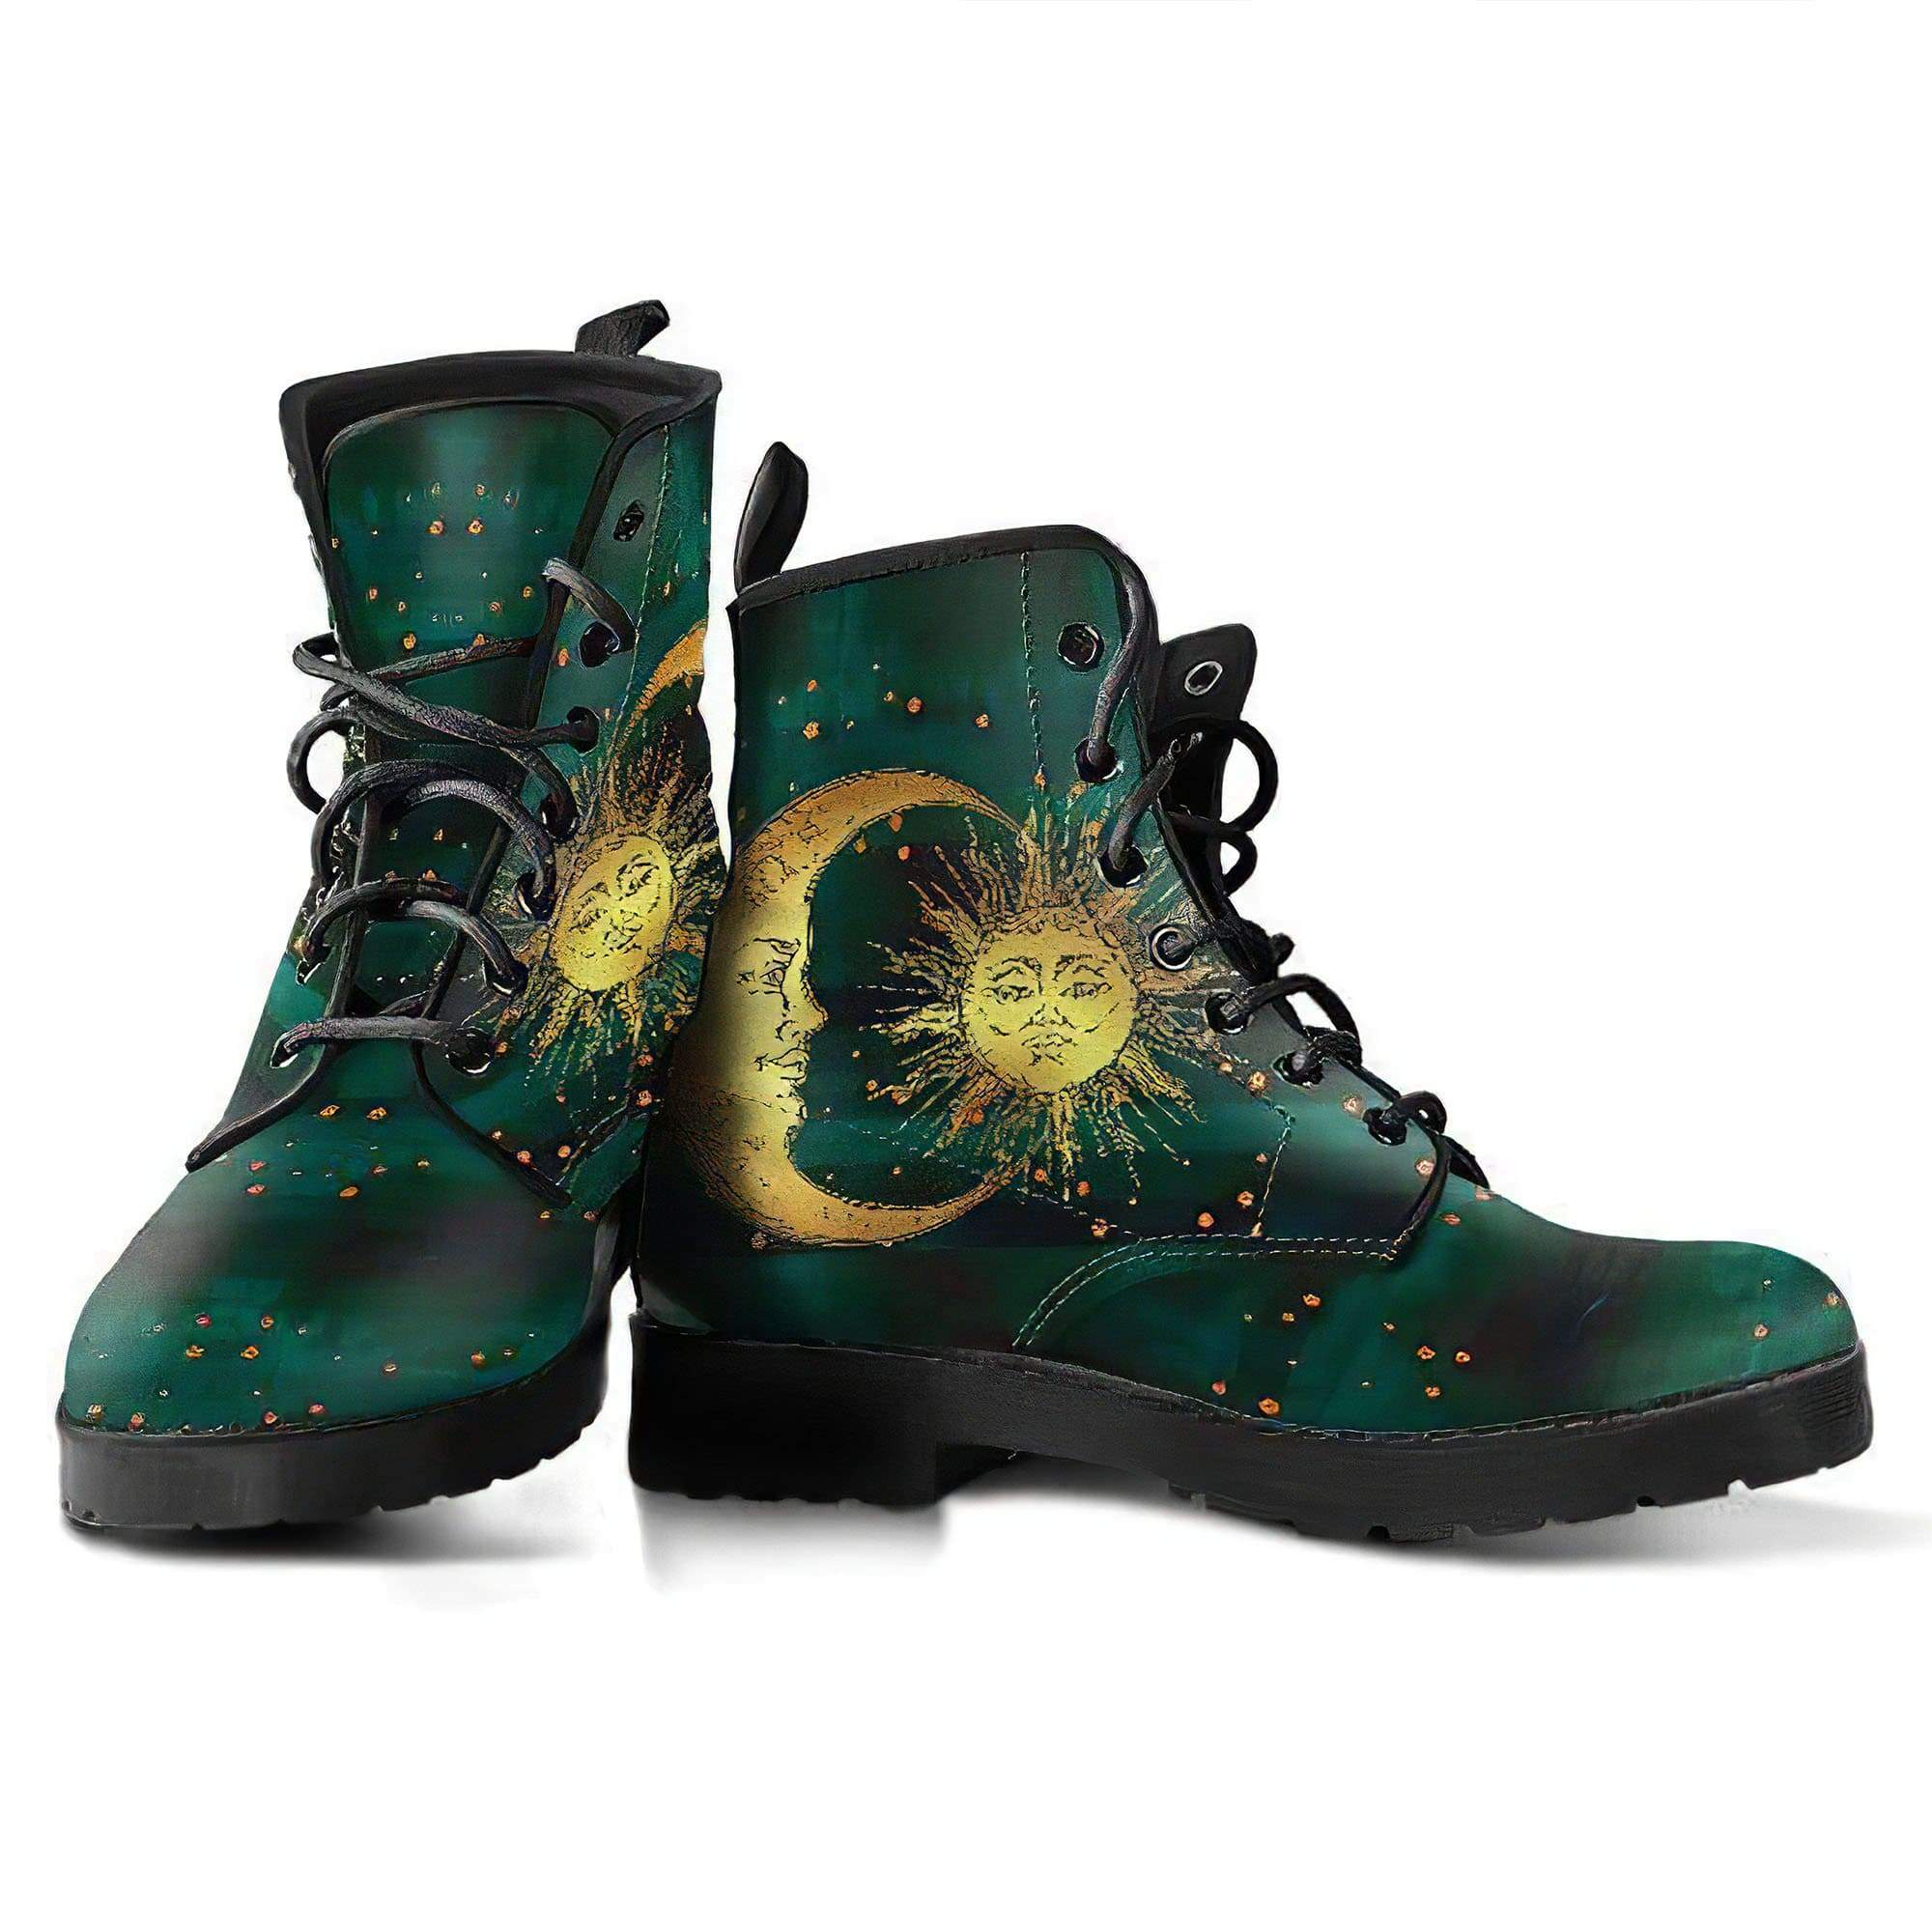 Sun and Moon 6 Handcrafted Boots Women's Leather Boots